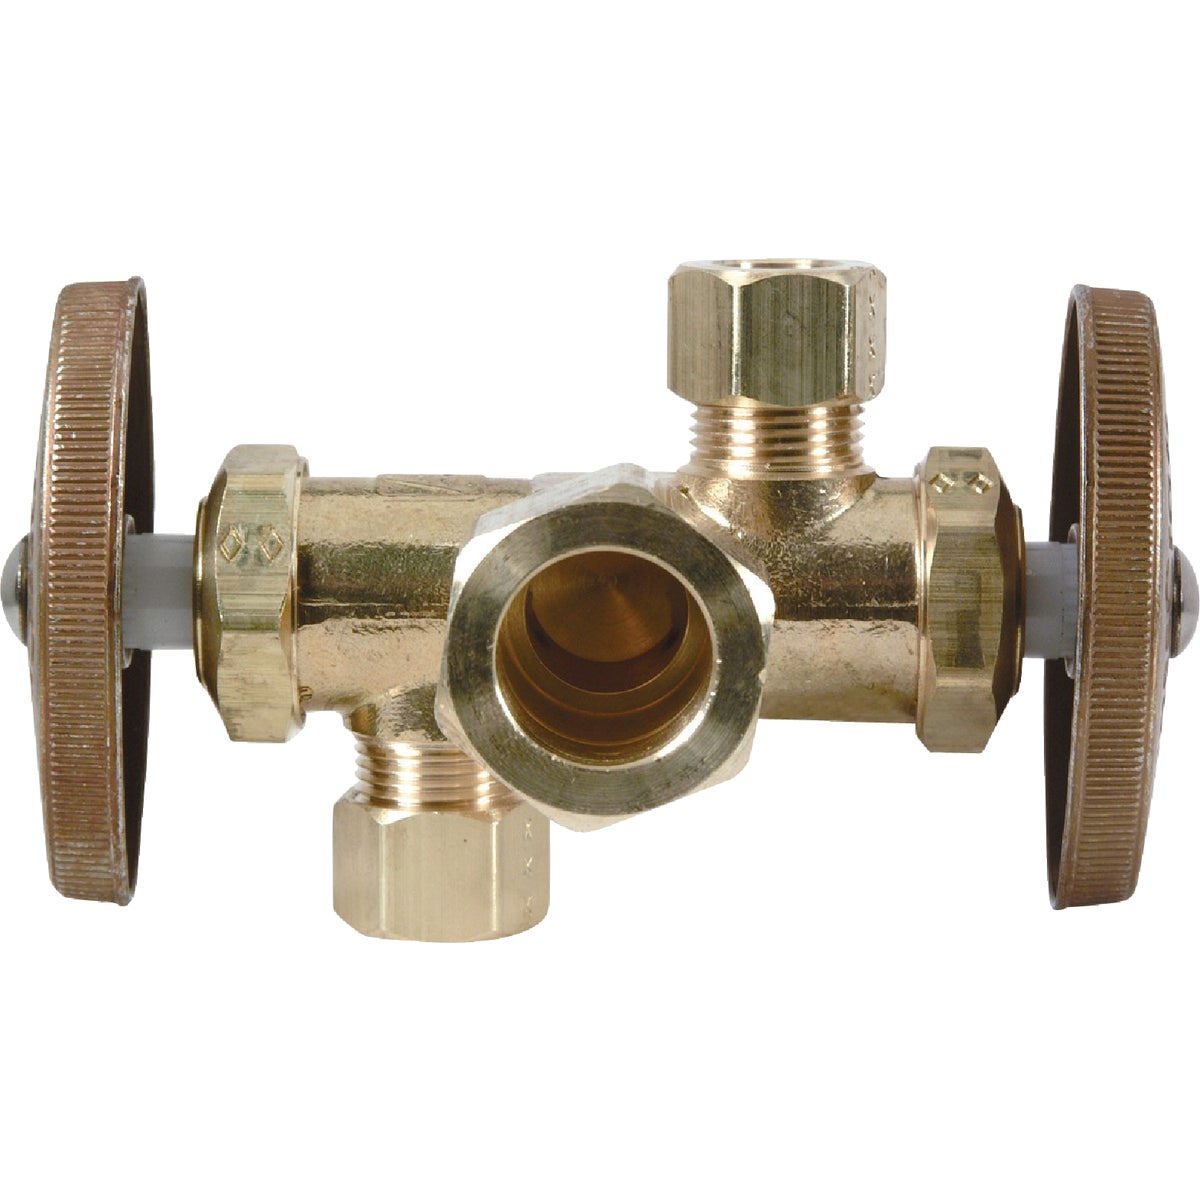 5/8CX3/8X3/8 DUAL VALVE - CR1901DVX R by Brass Craft